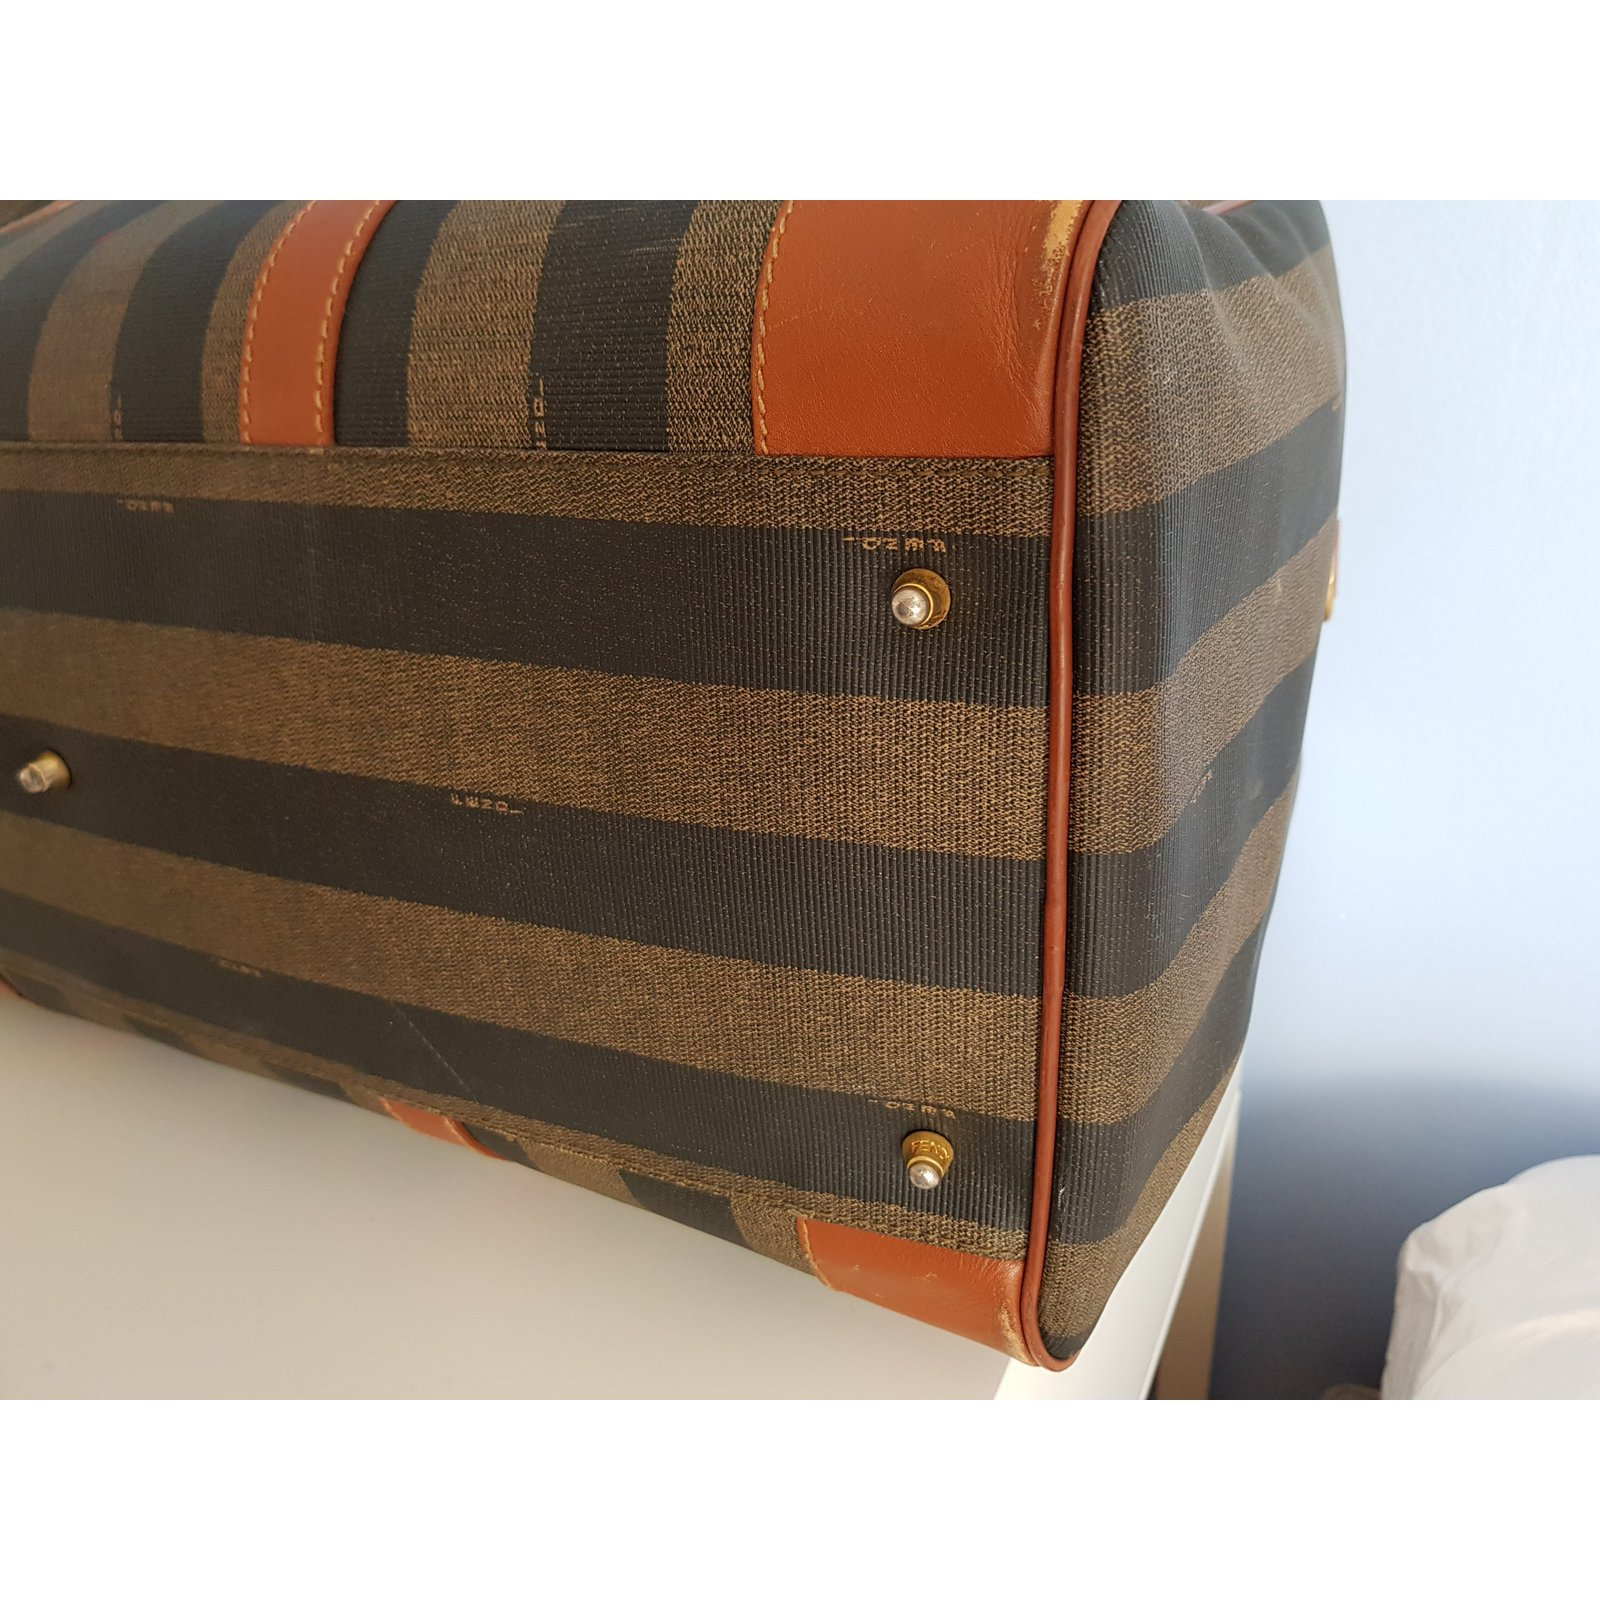 ... Travel bag Fendi · Facebook · Pin This. Fendi fendi pequin large ... de9d65a48043a